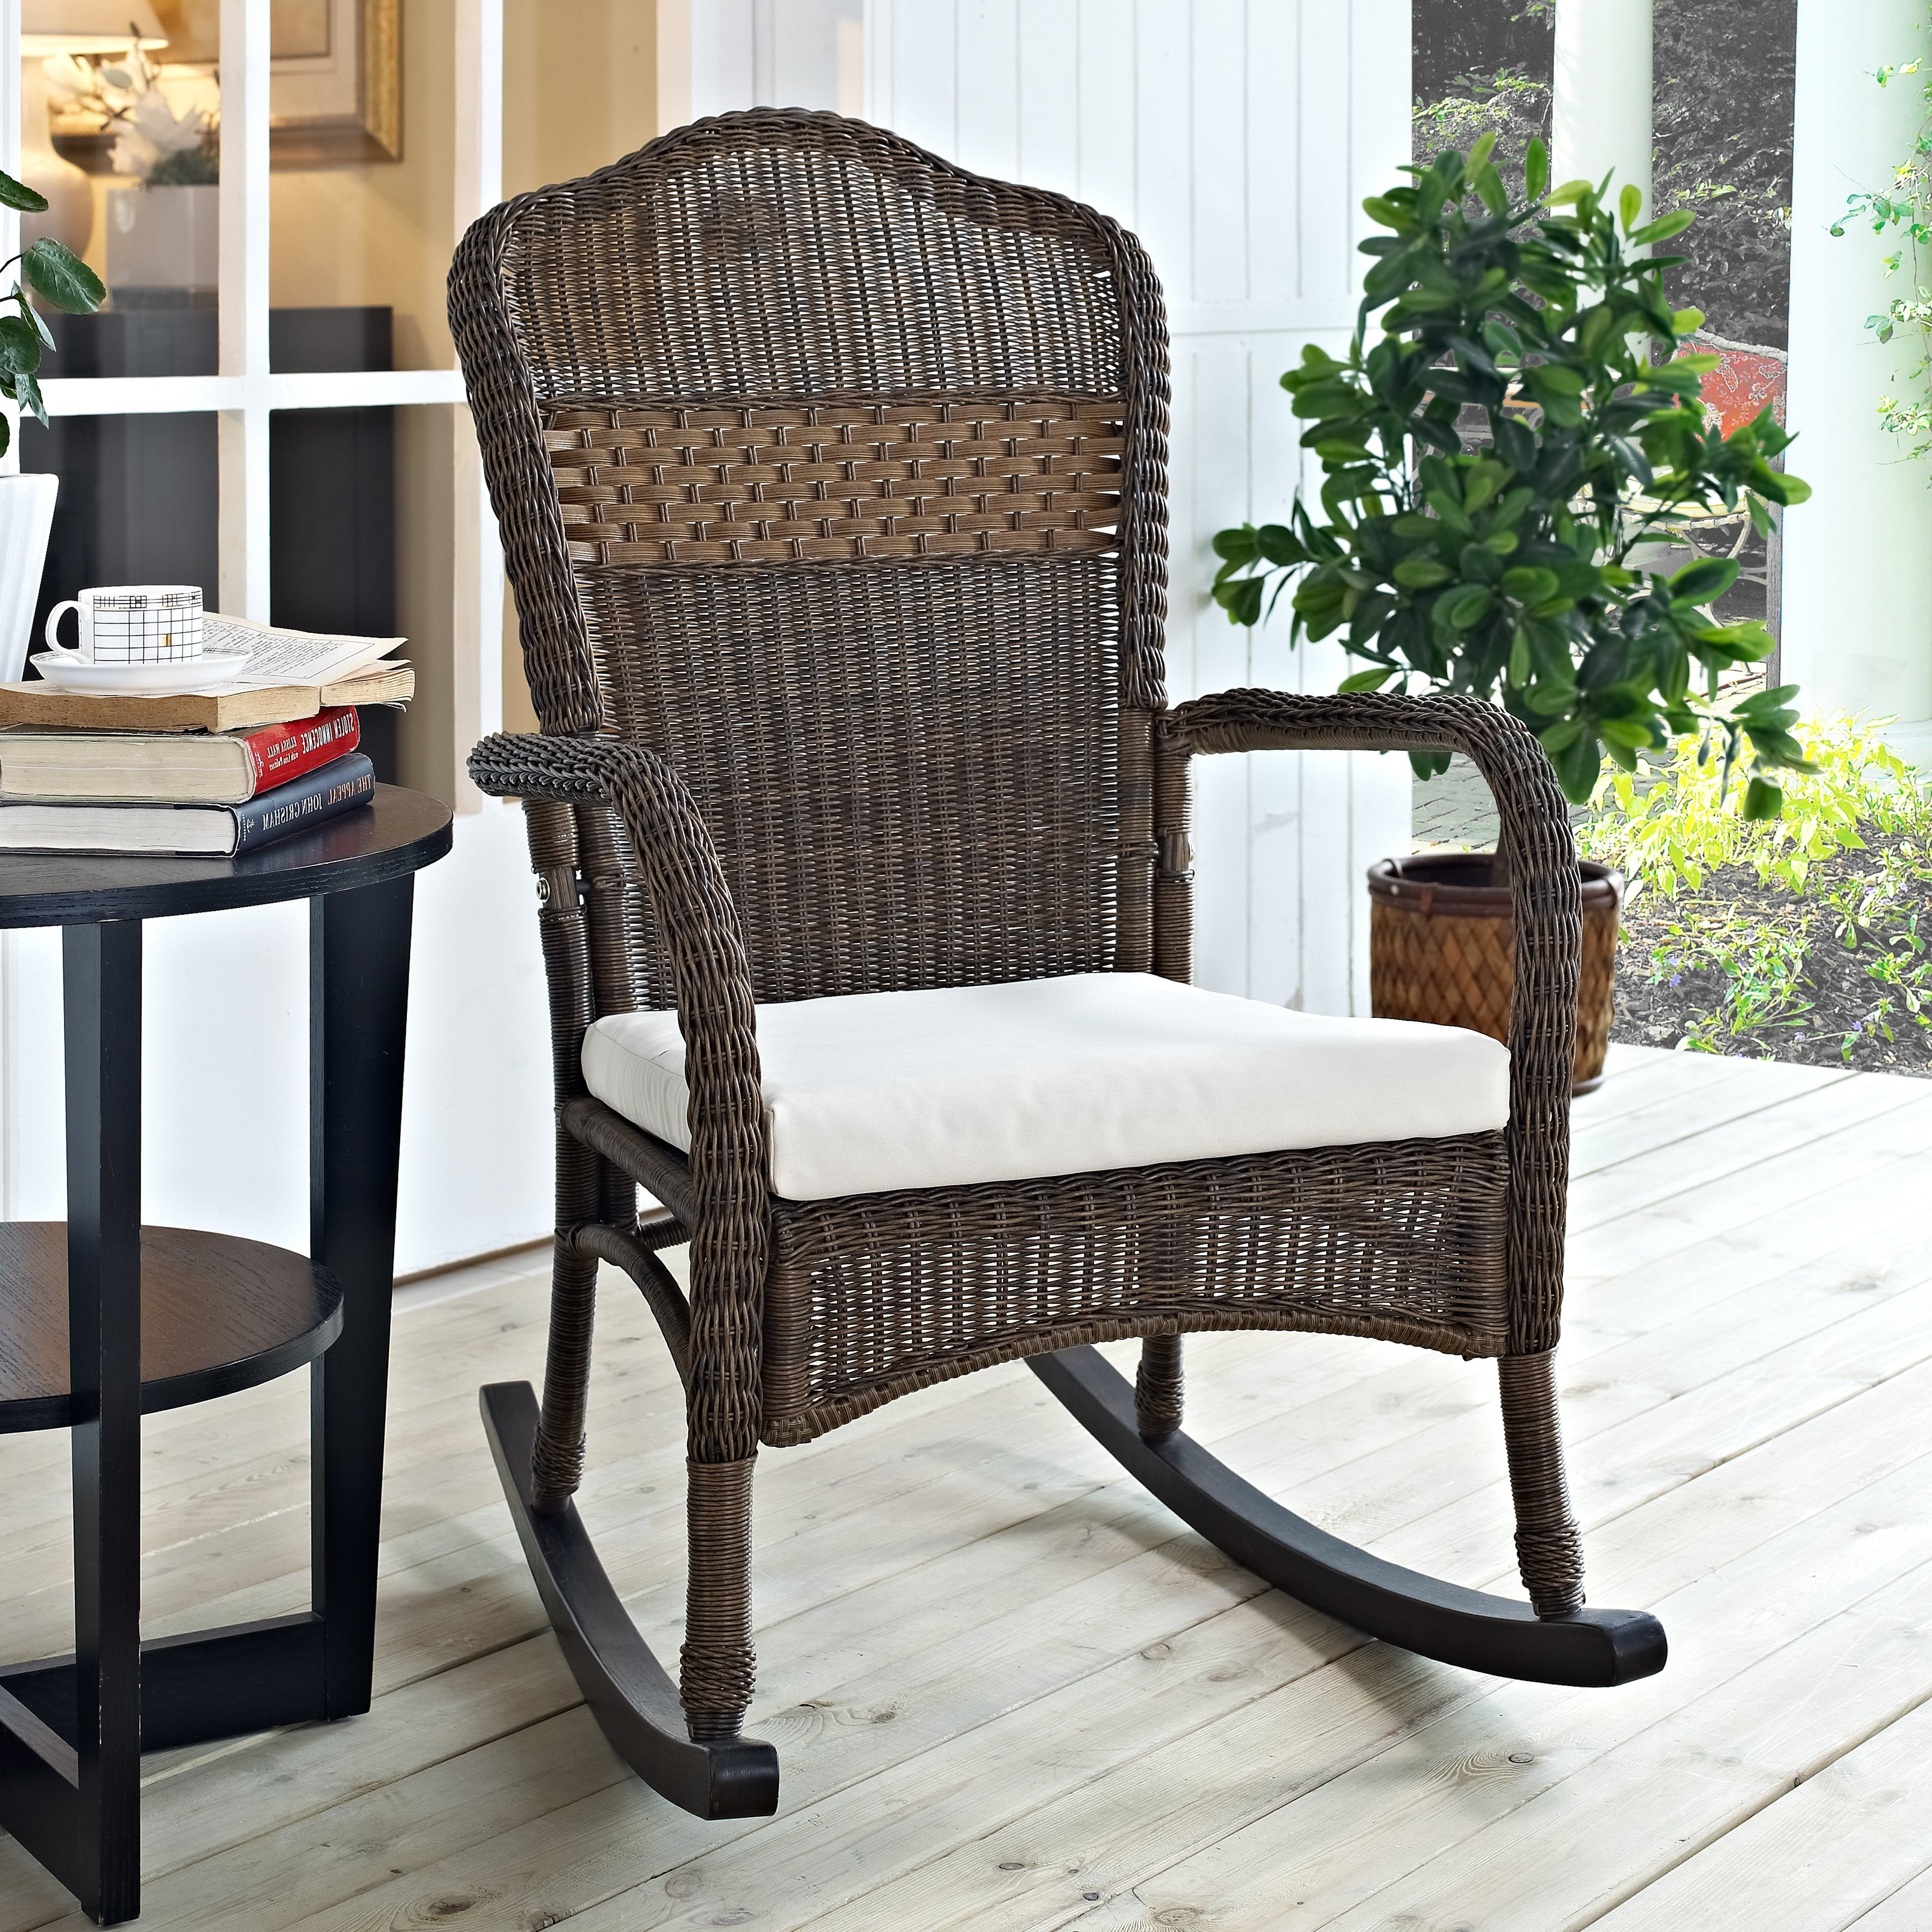 Widely Used Coral Coast Mocha Resin Wicker Rocking Chair With Beige Cushion Inside Used Patio Rocking Chairs (View 19 of 20)